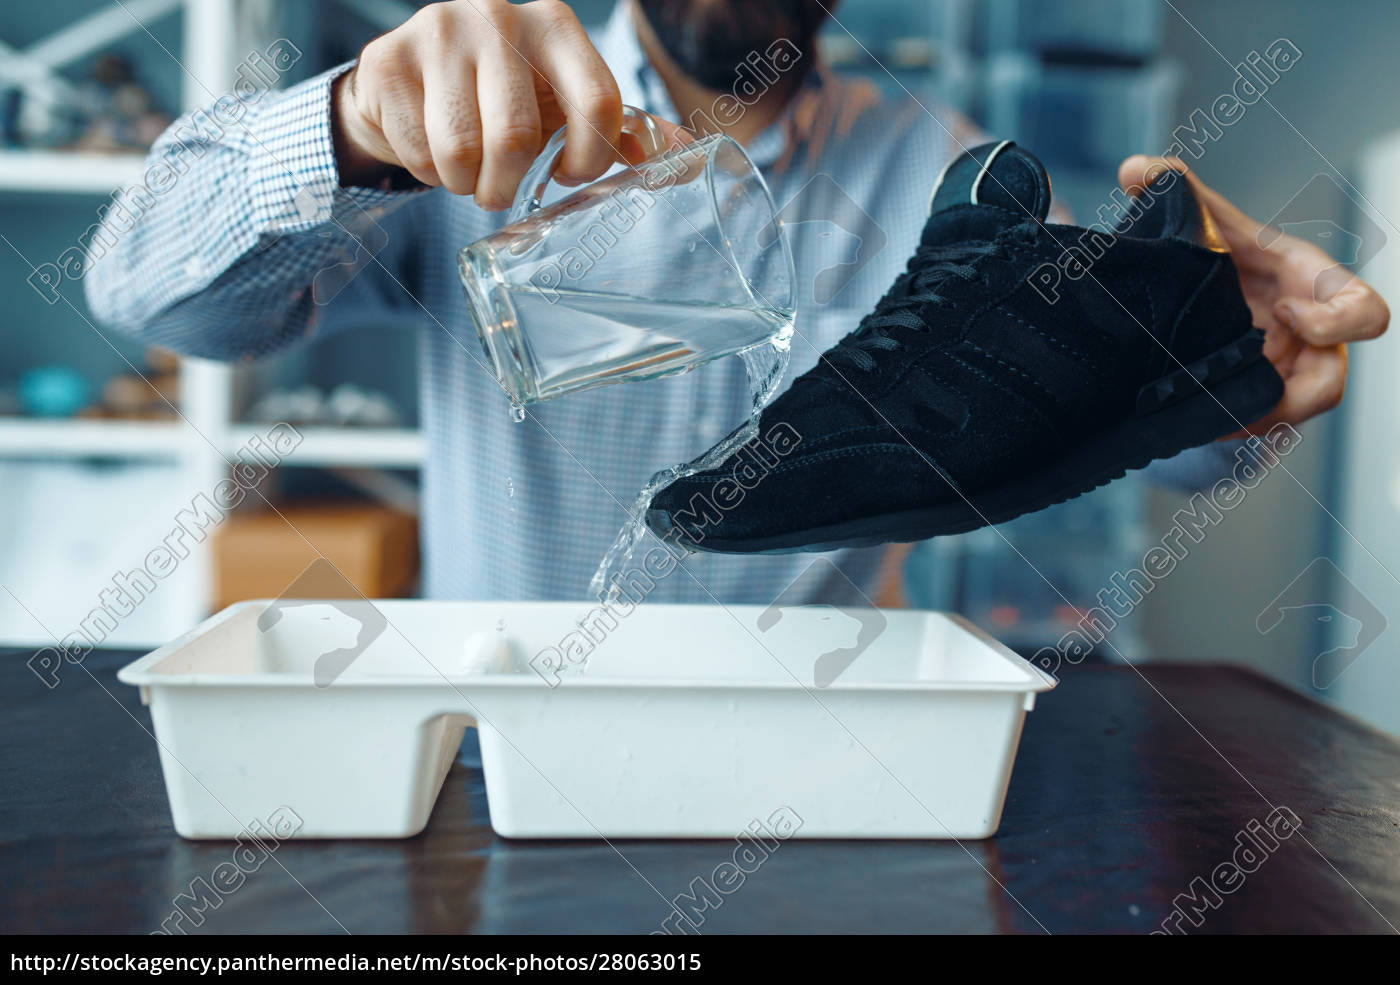 shoemaker, check, shoes, for, water, resistance - 28063015